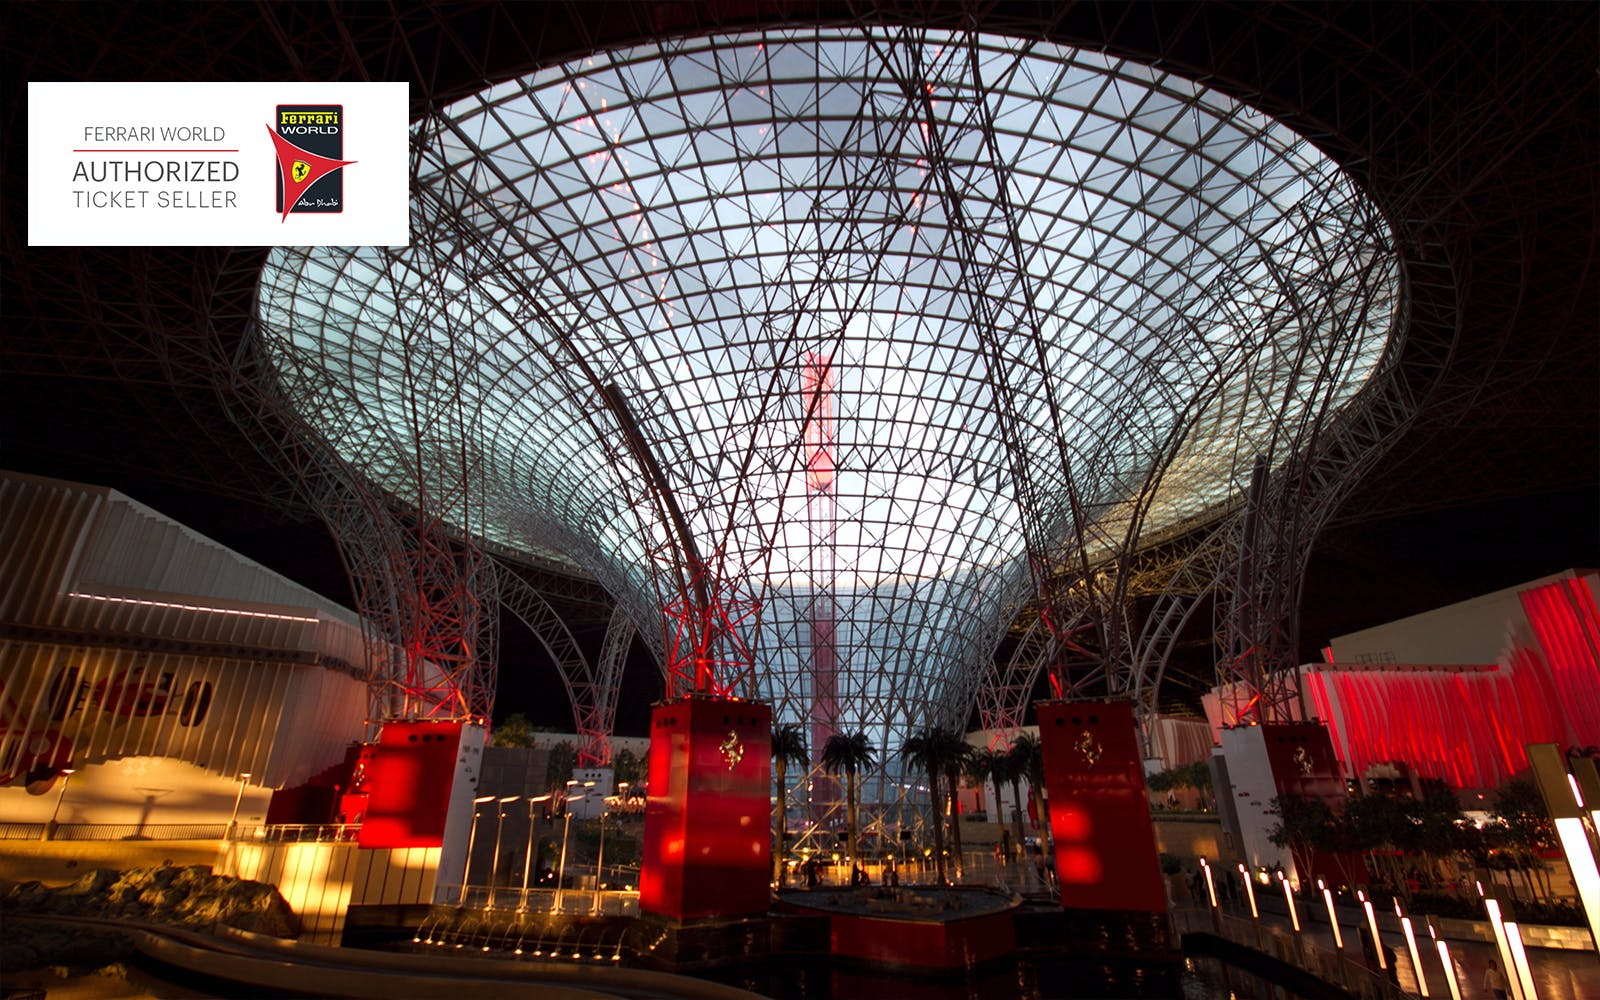 ferrari world tickets with all ride quick pass-2